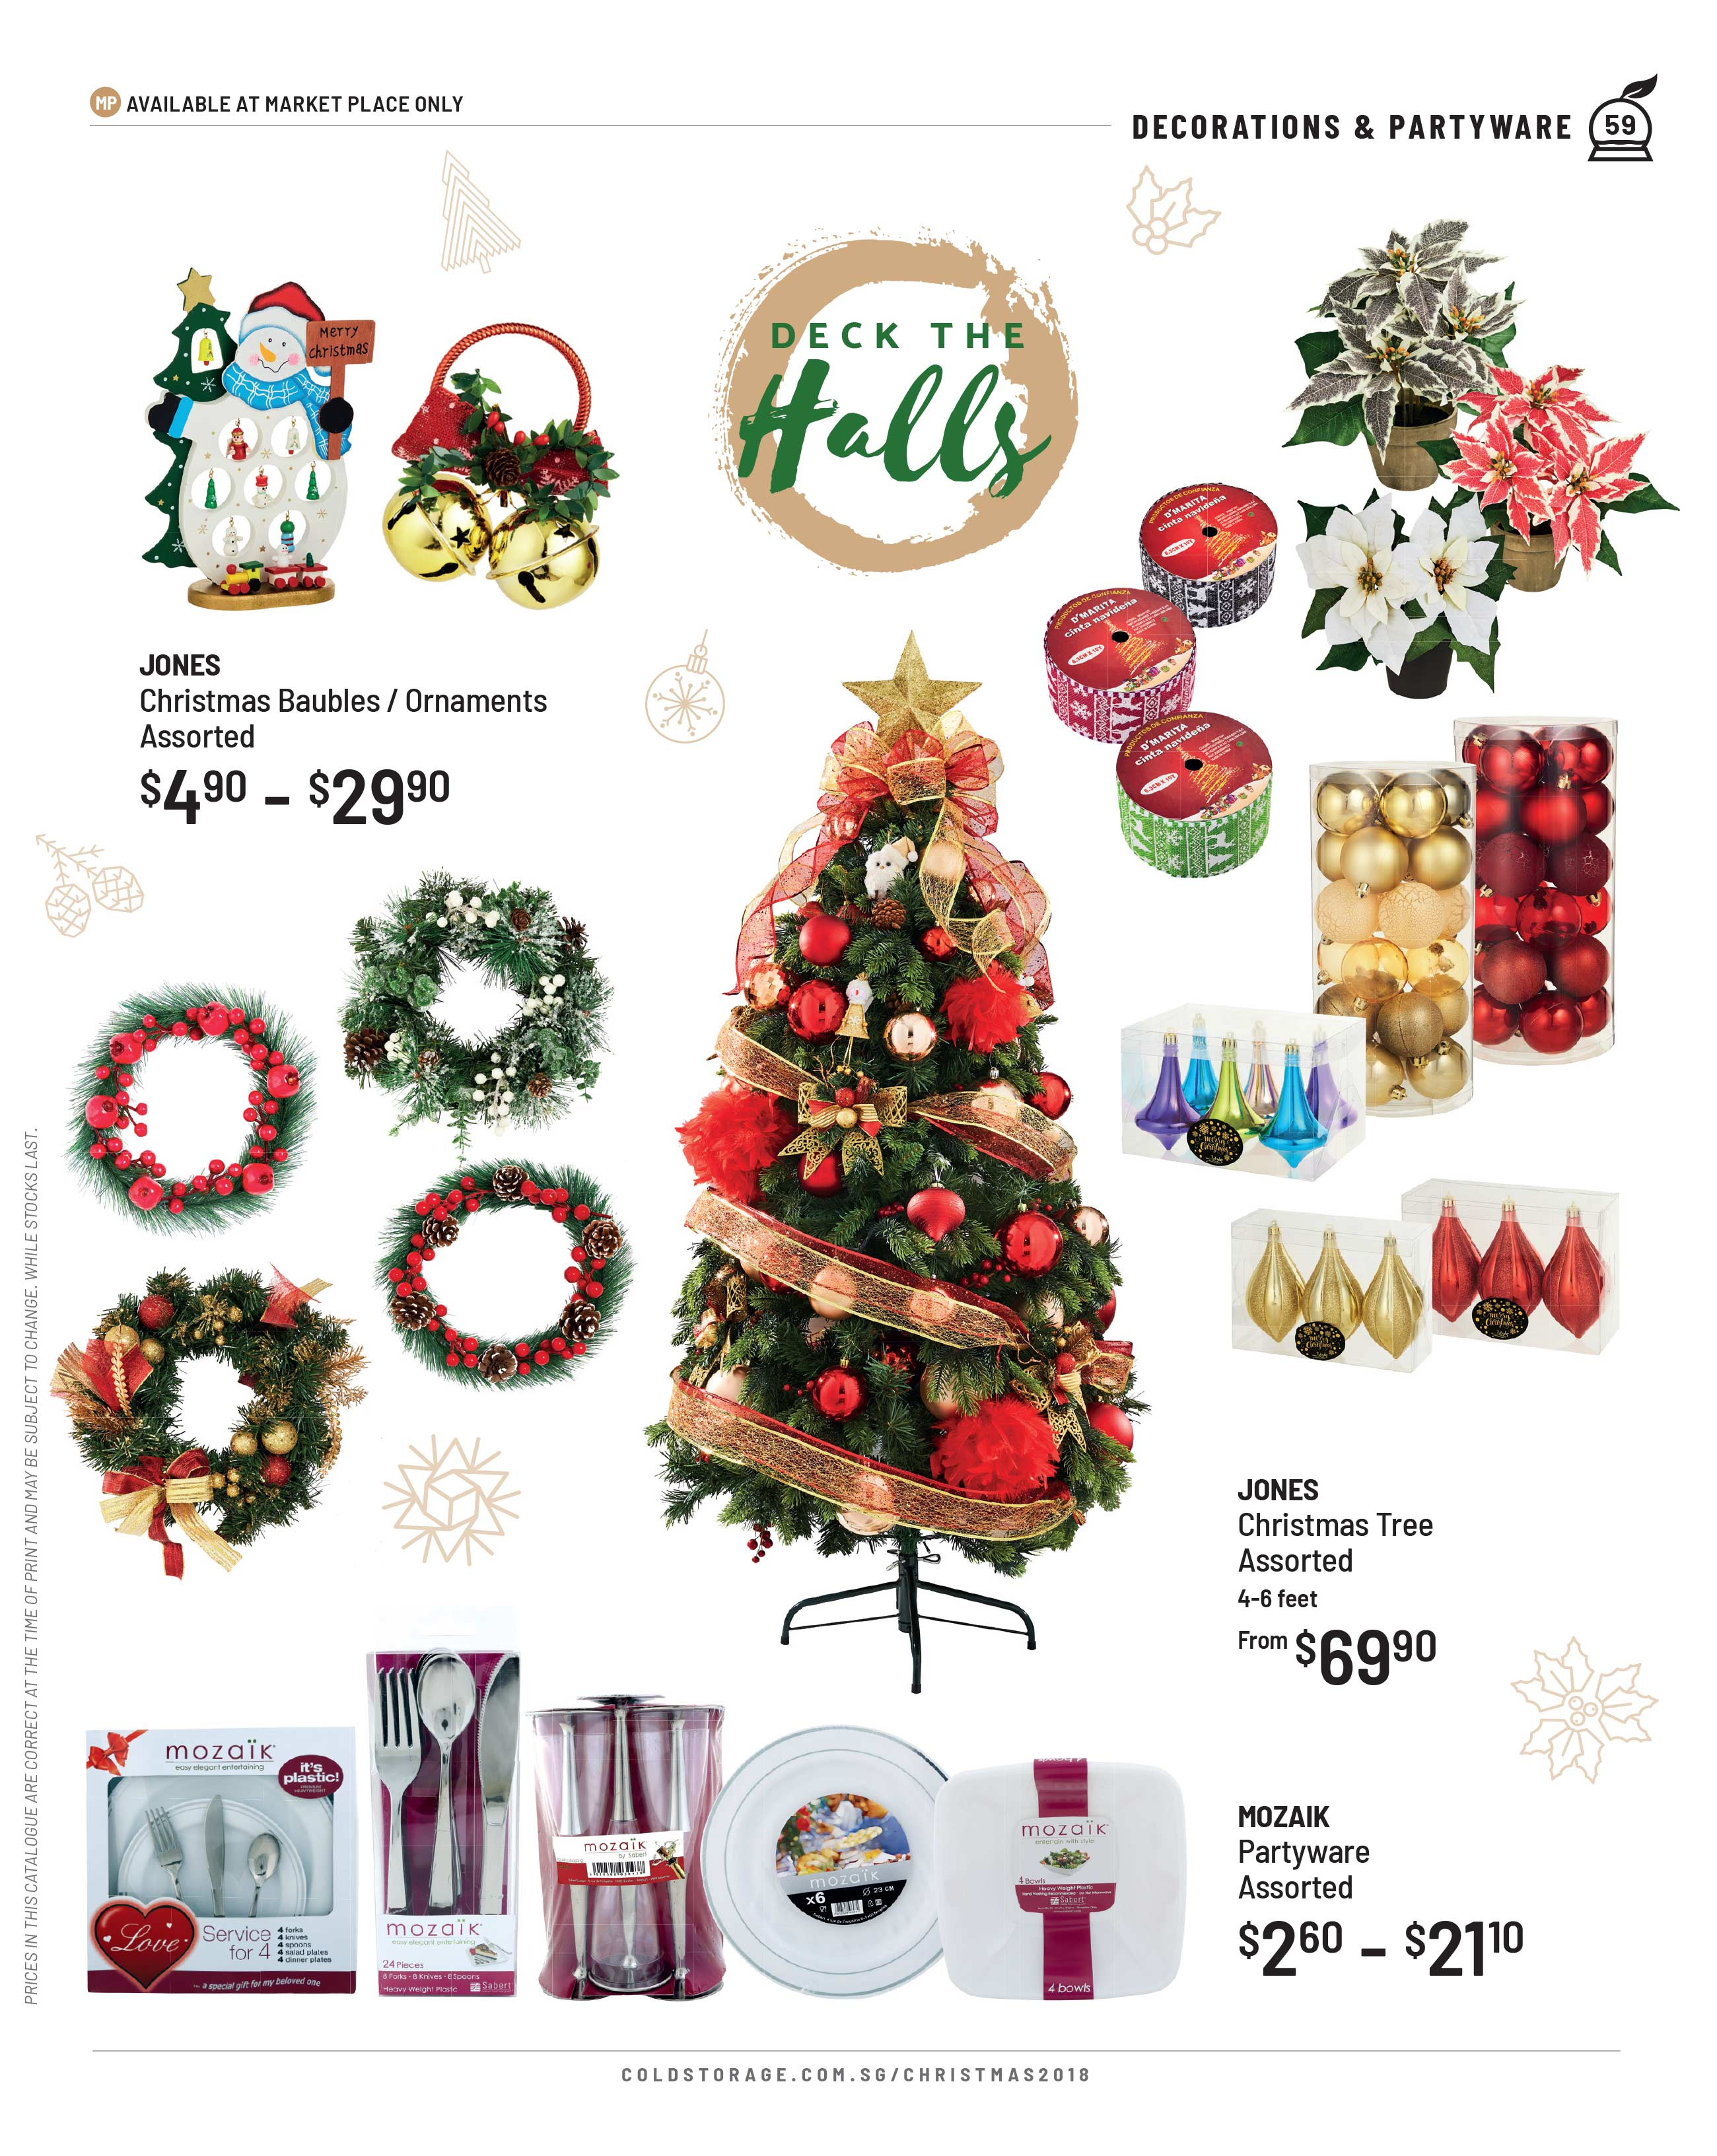 Cold Storage Christmas | Food & Gift Guide